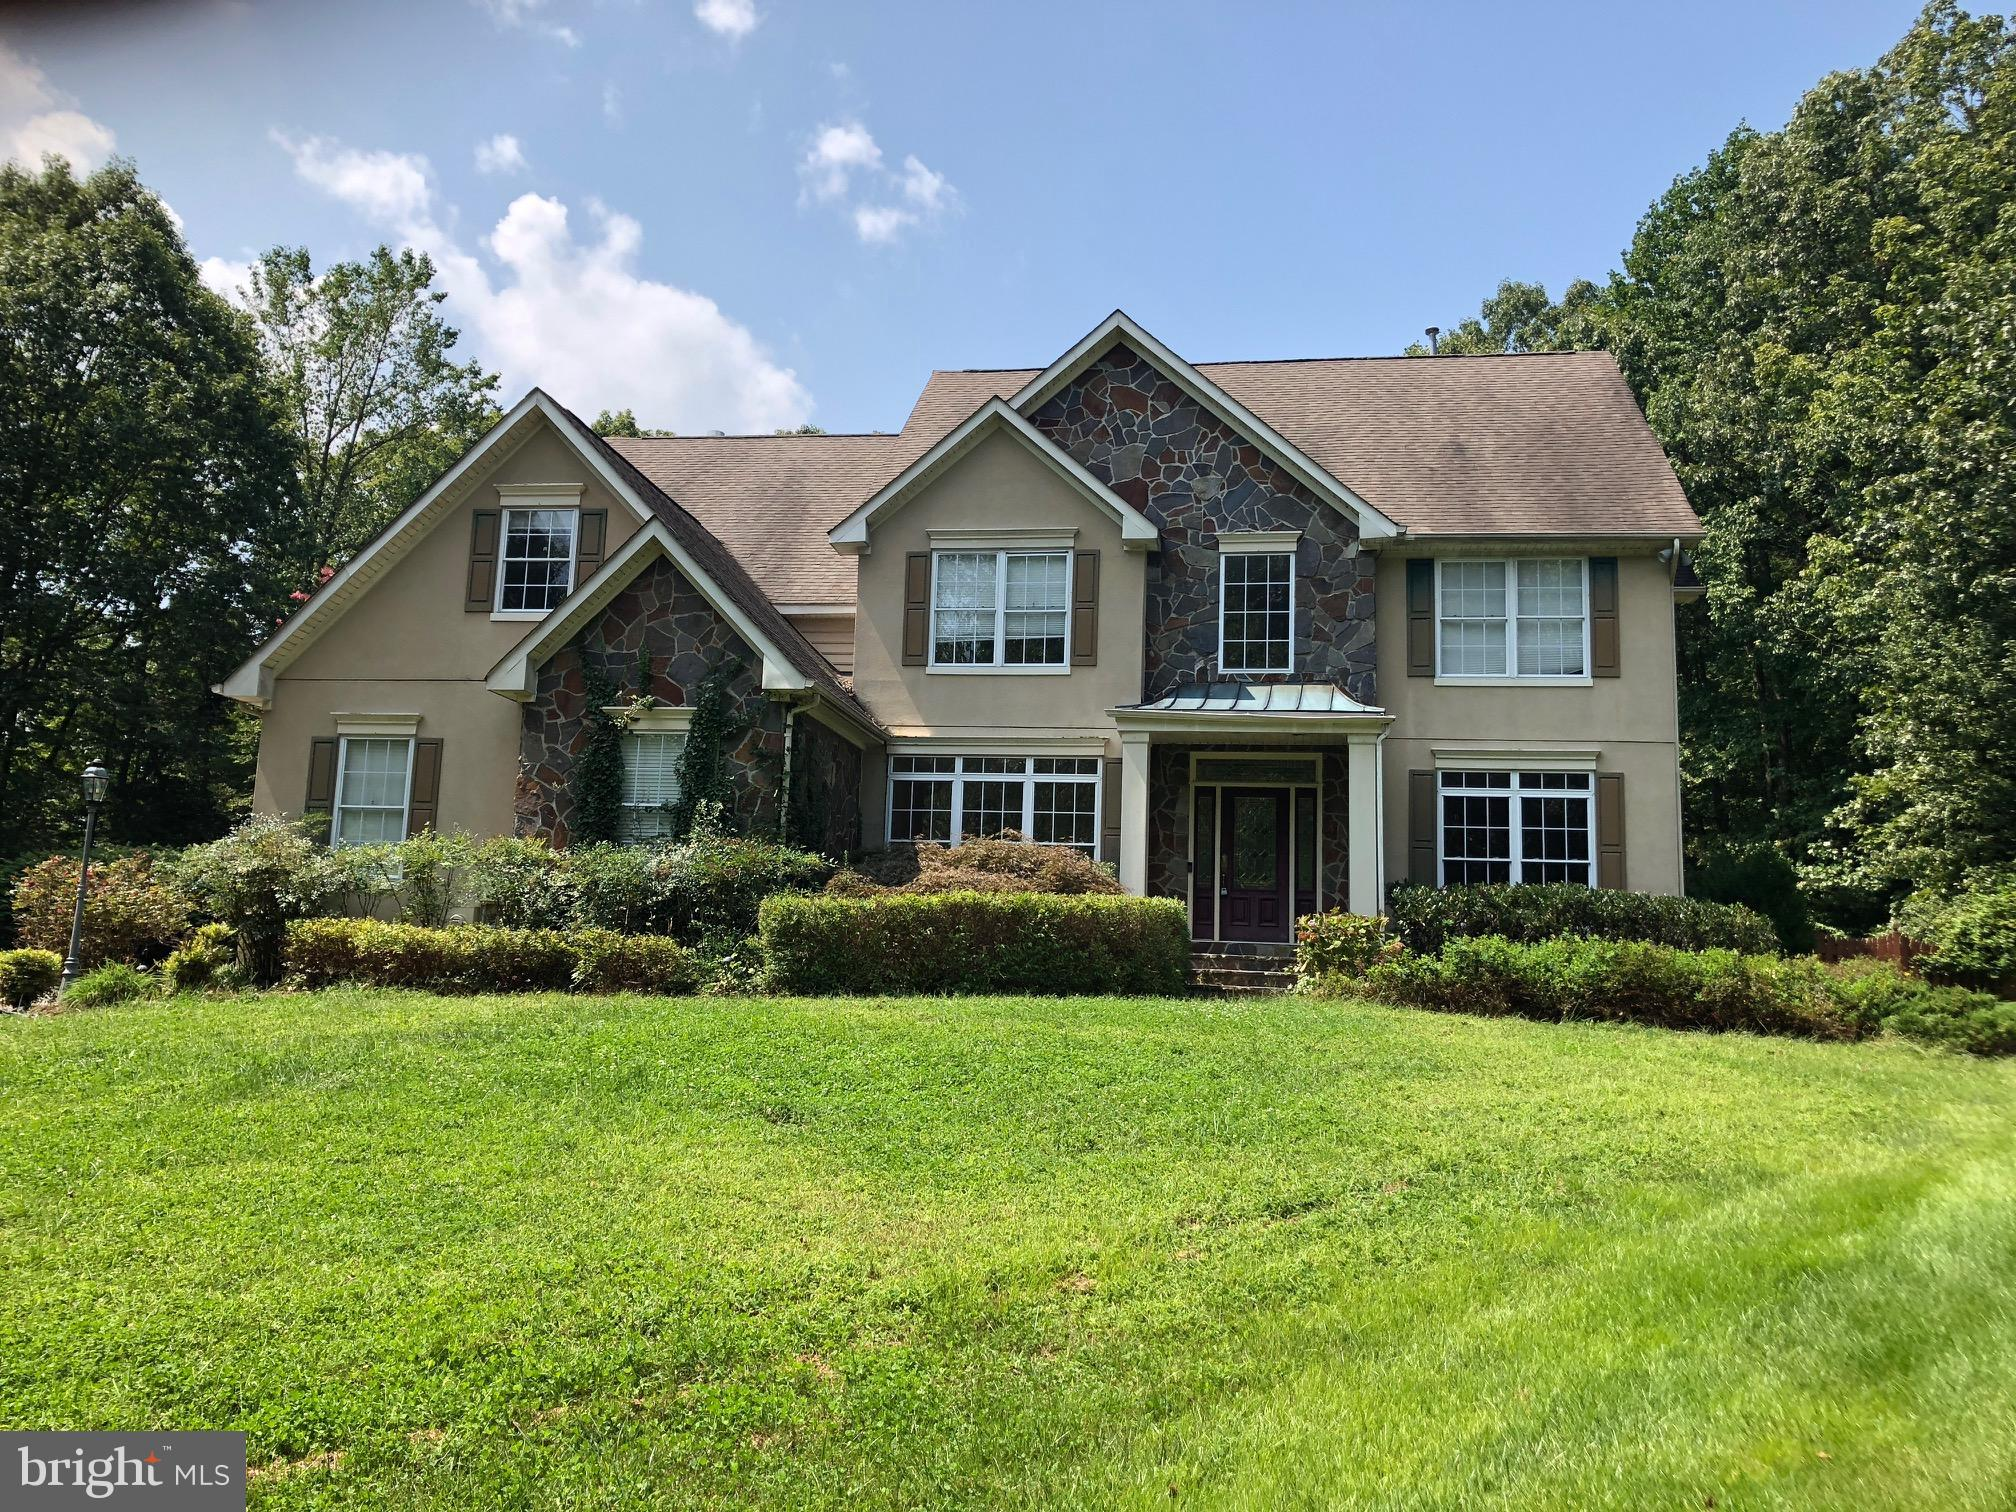 1304 ANGLESEY DRIVE, DAVIDSONVILLE, MD 21035